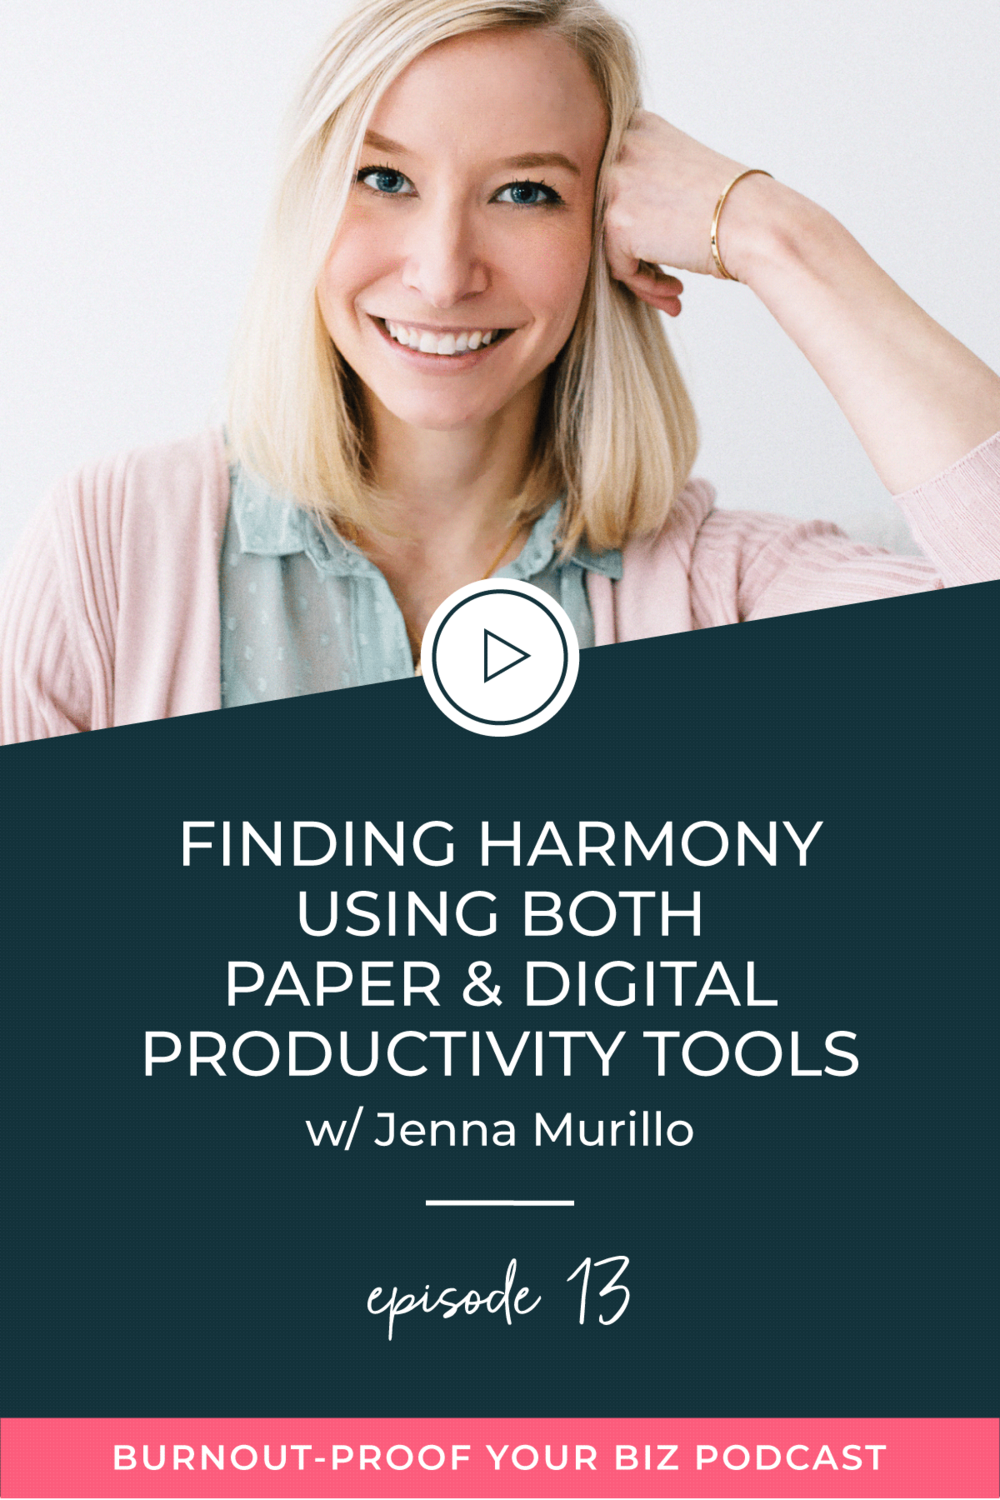 Burnout-Proof Your Biz Podcast with Chelsea B Foster | Episode 013 - Finding Harmony Using Both Paper & Digital Productivity Tools with Jenna Murillo | Learn how to run your biz and live your dream life on your own terms without the fear of burnout.